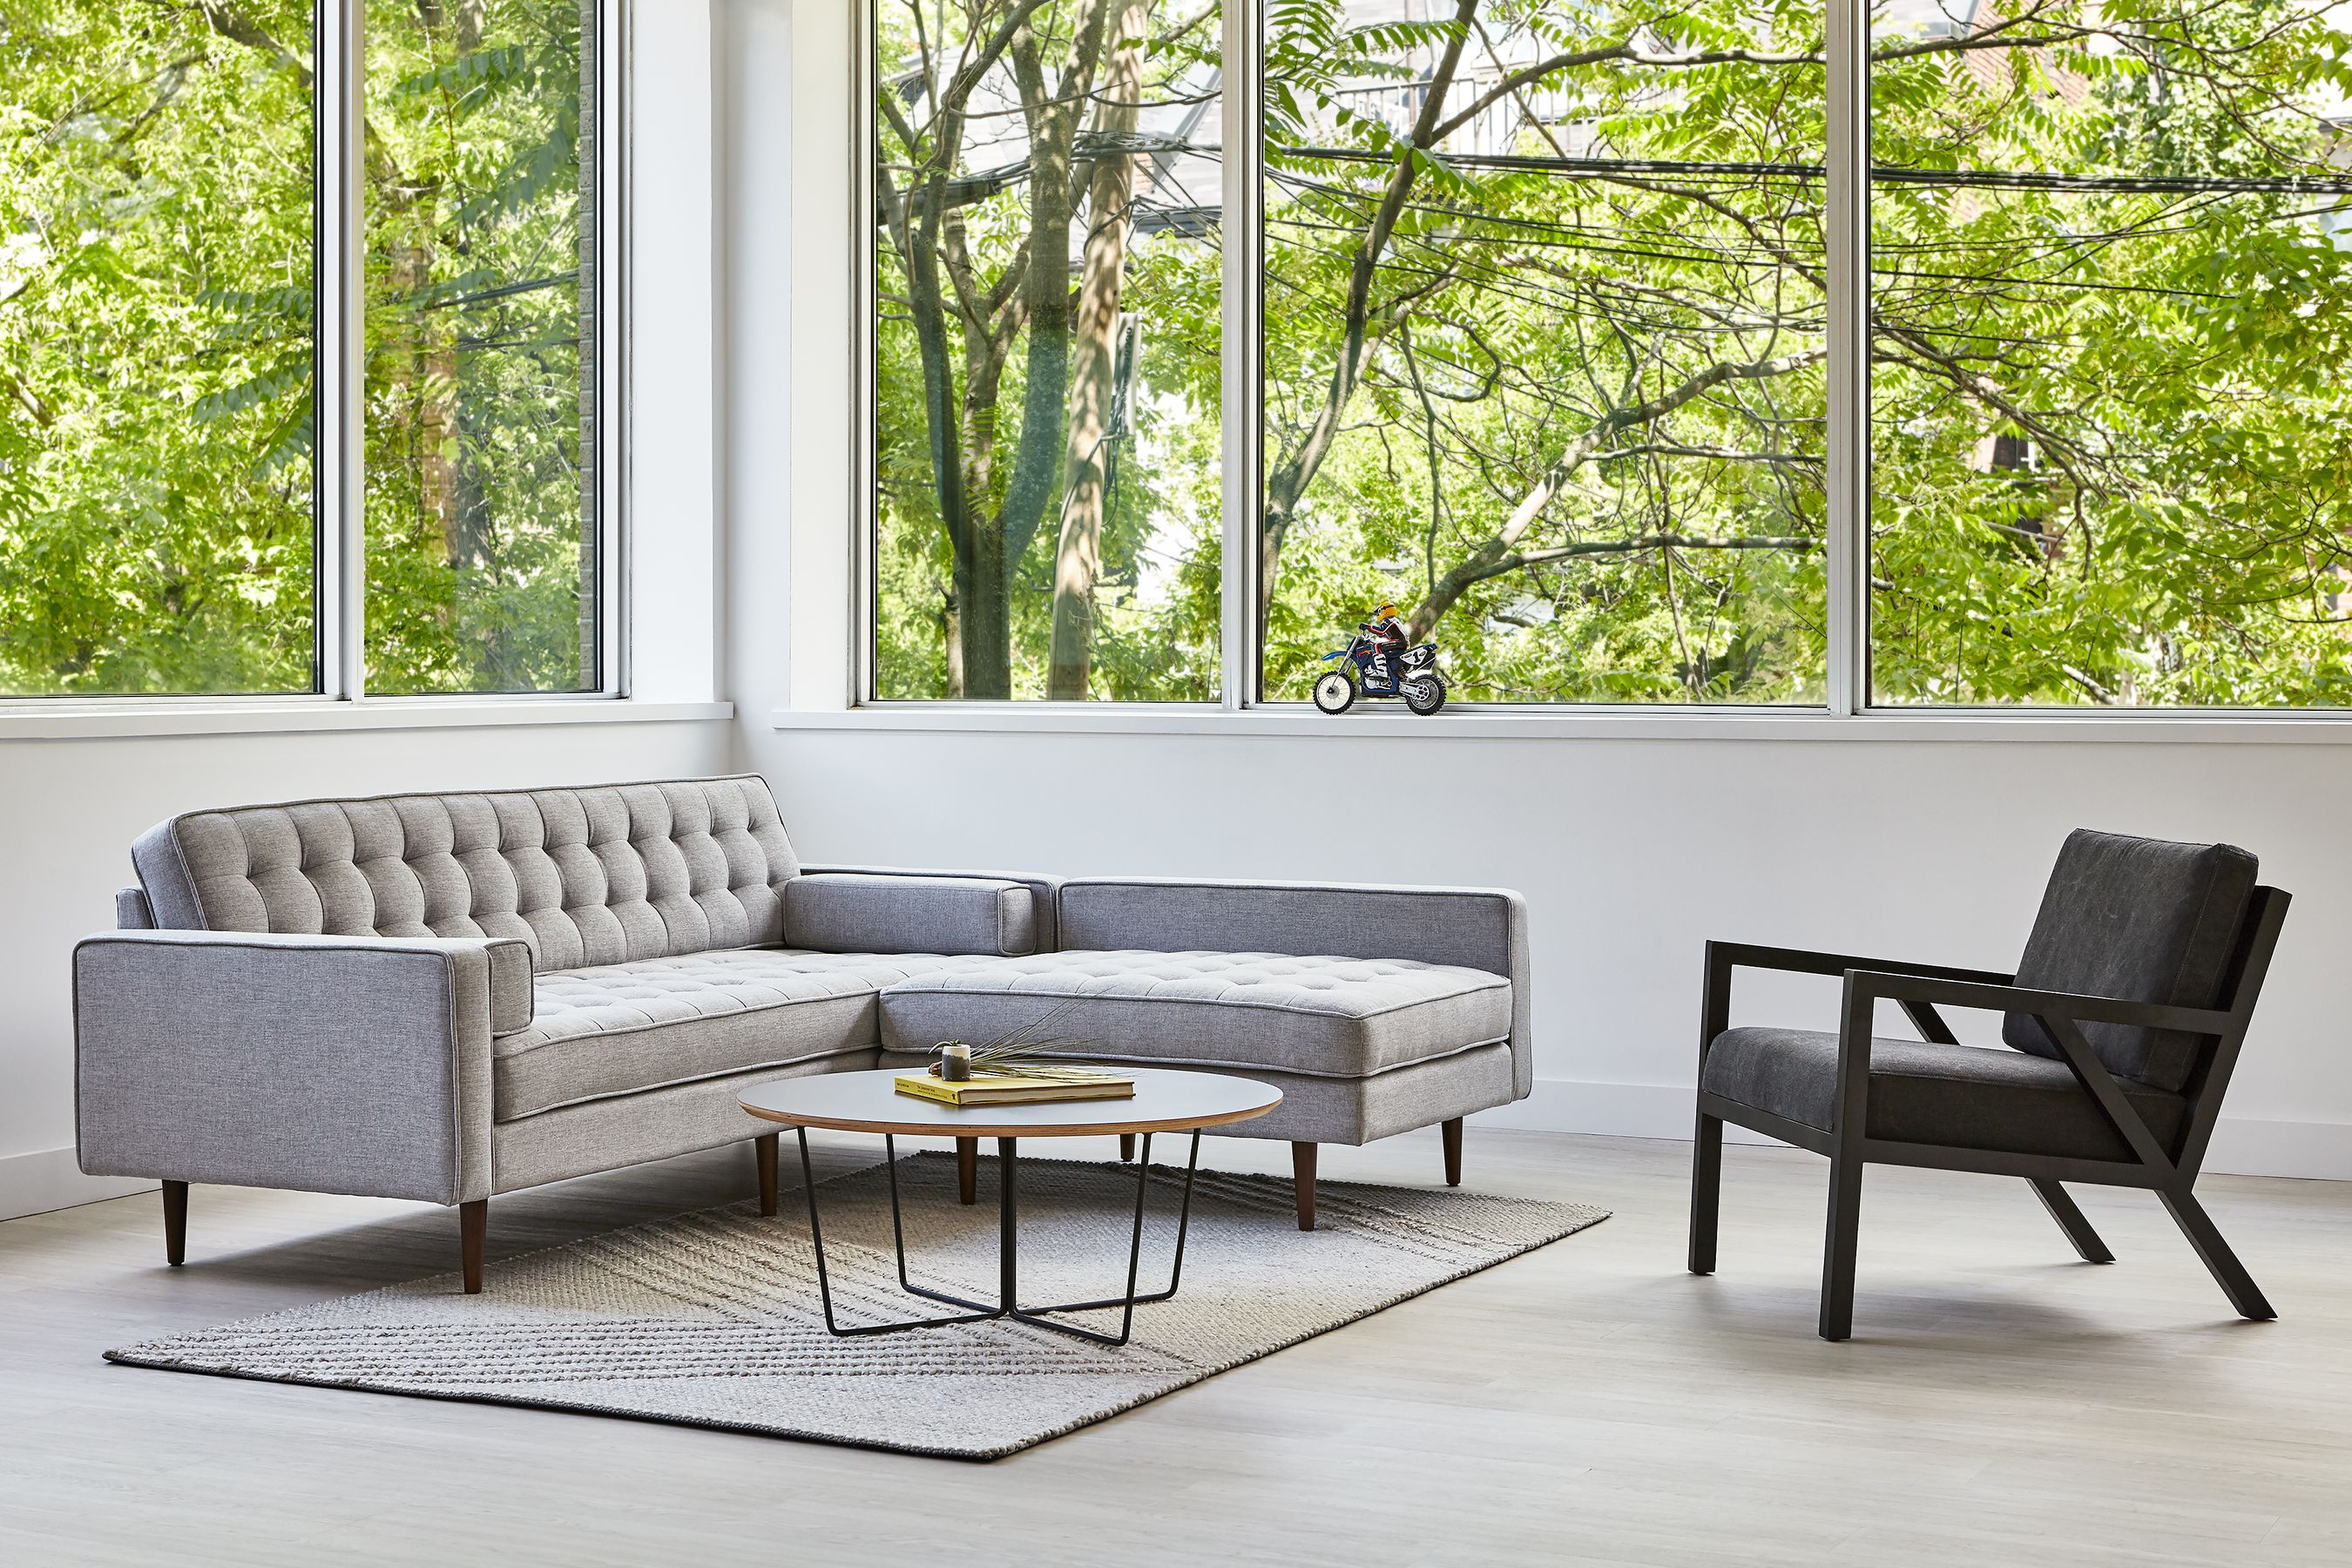 spencer bi sectional truss chair array coffee table avro rug